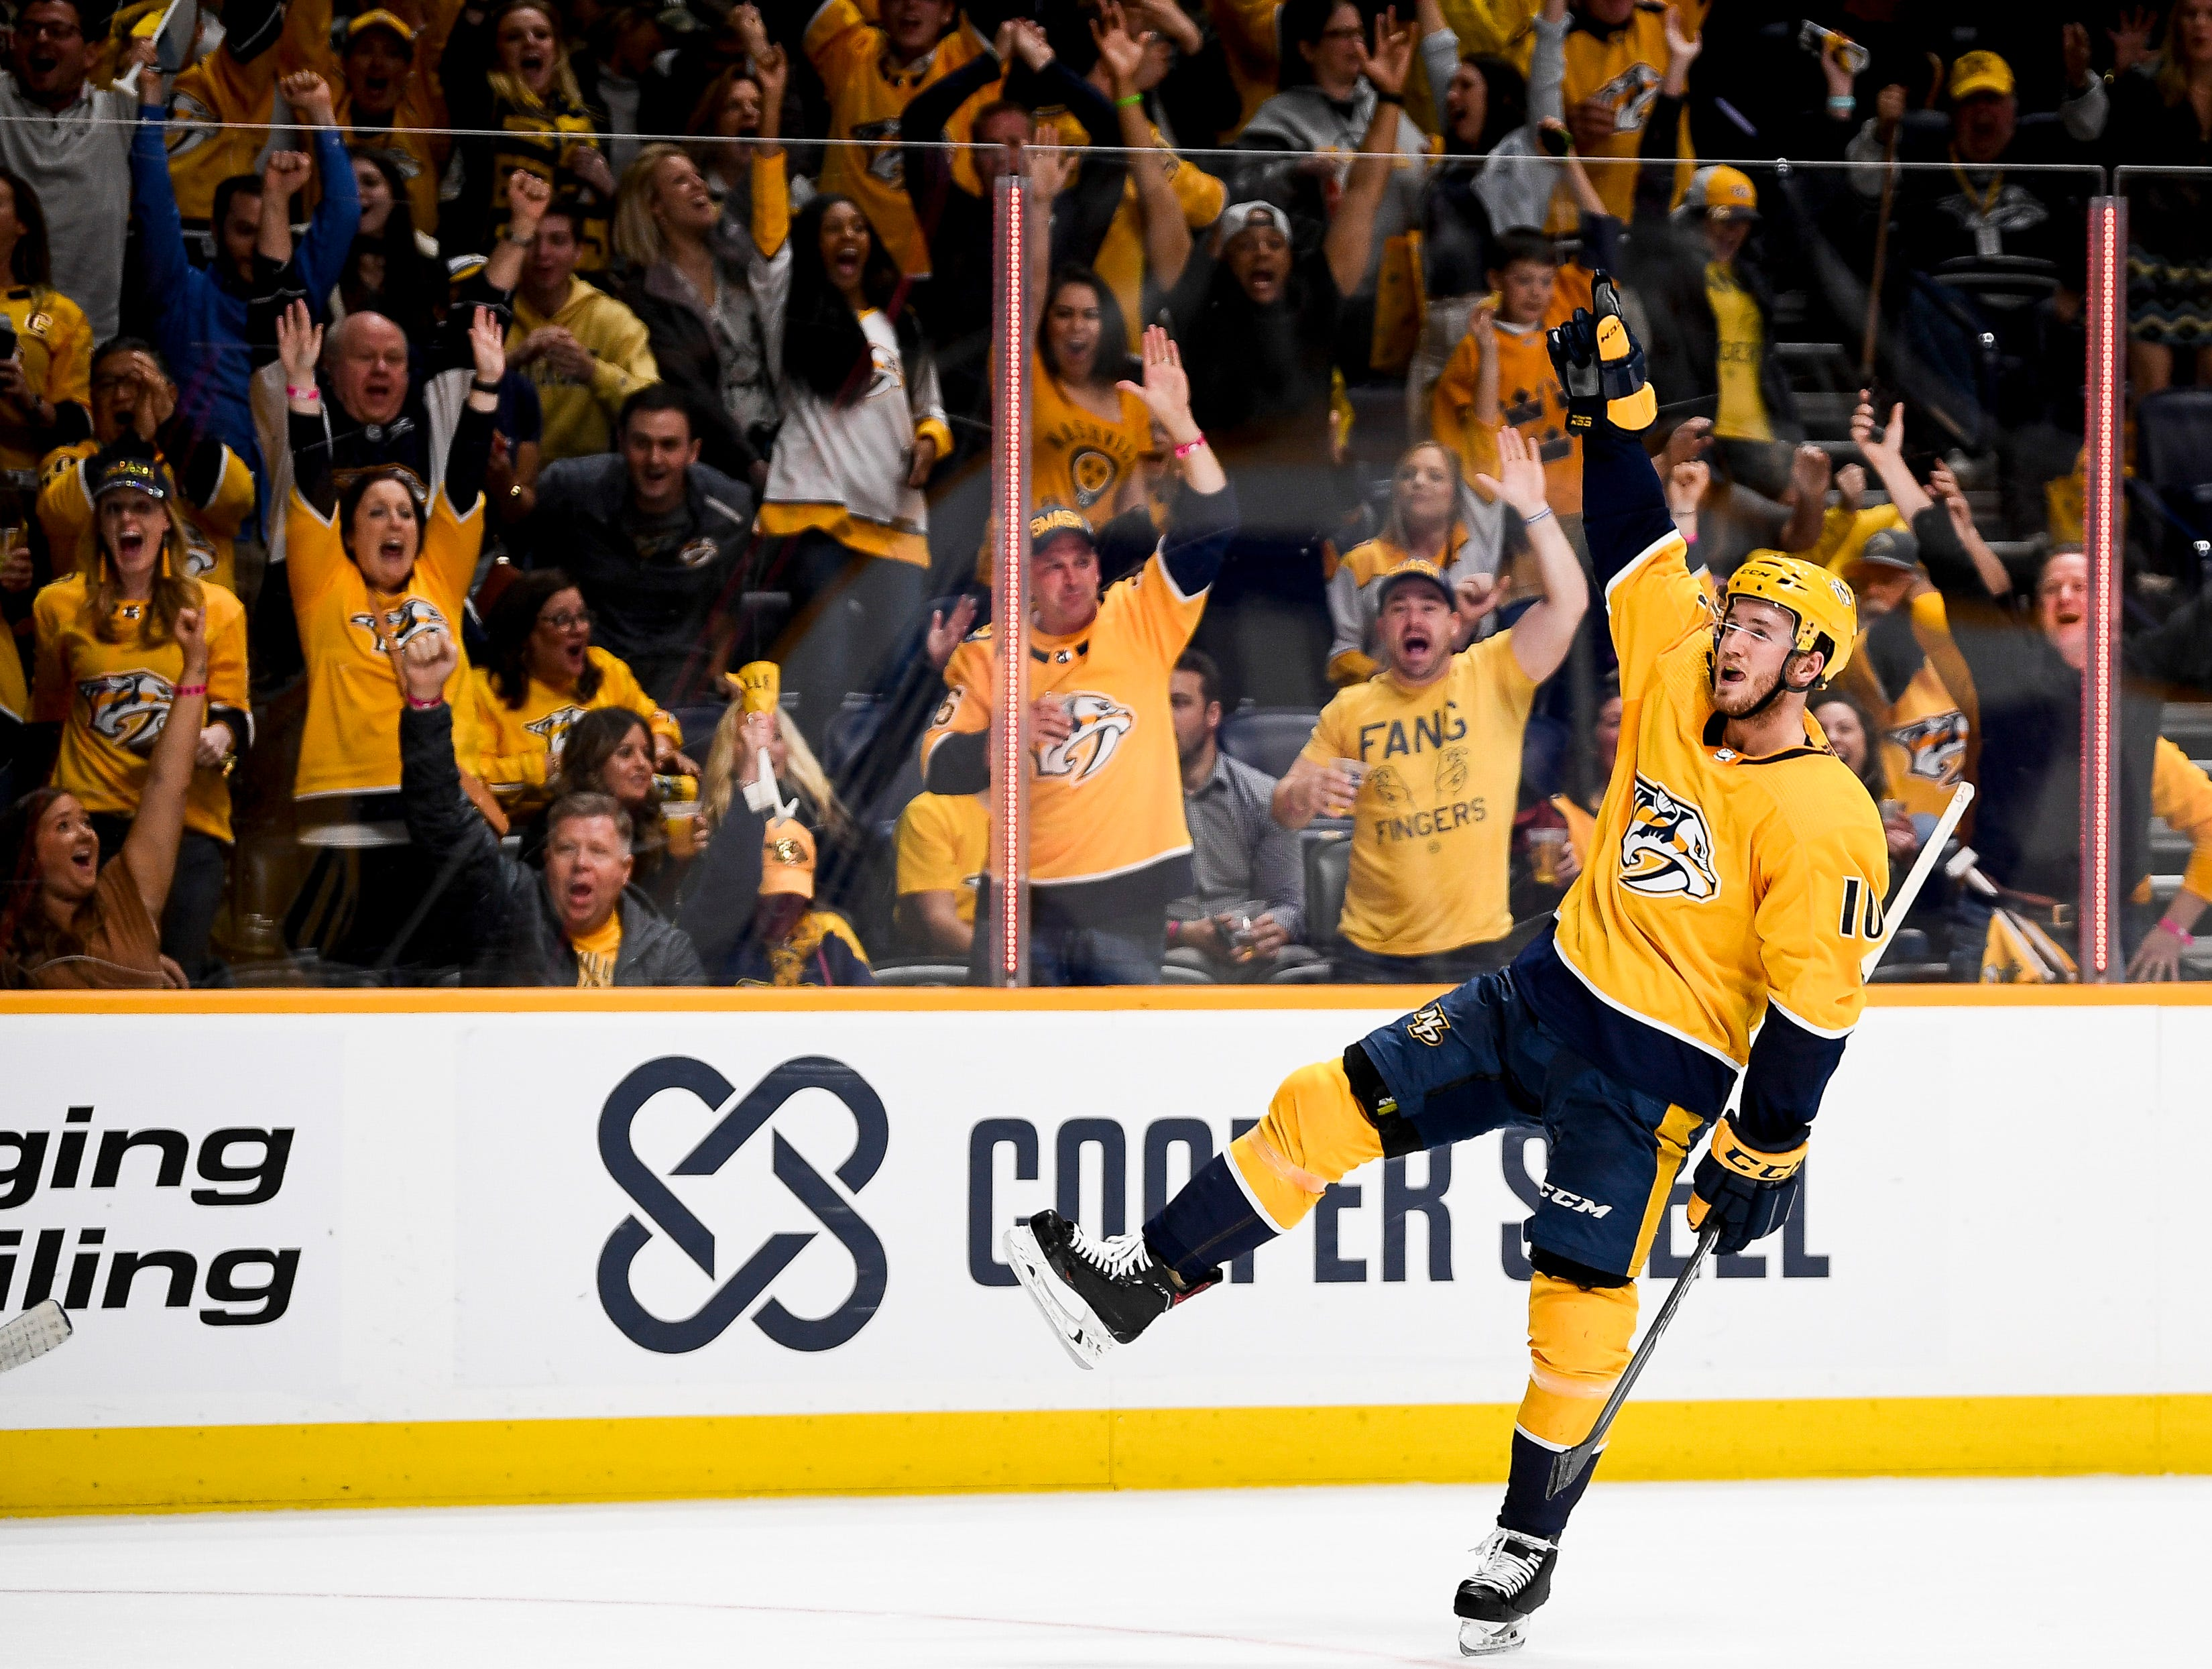 April 6, 2019 - Predators 5, Blackhawks 2: Nashville Predators center Colton Sissons (10) reacts to scoring against the Chicago Blackhawks during the third period at Bridgestone Arena in Nashville, Tenn., Saturday, April 6, 2019.